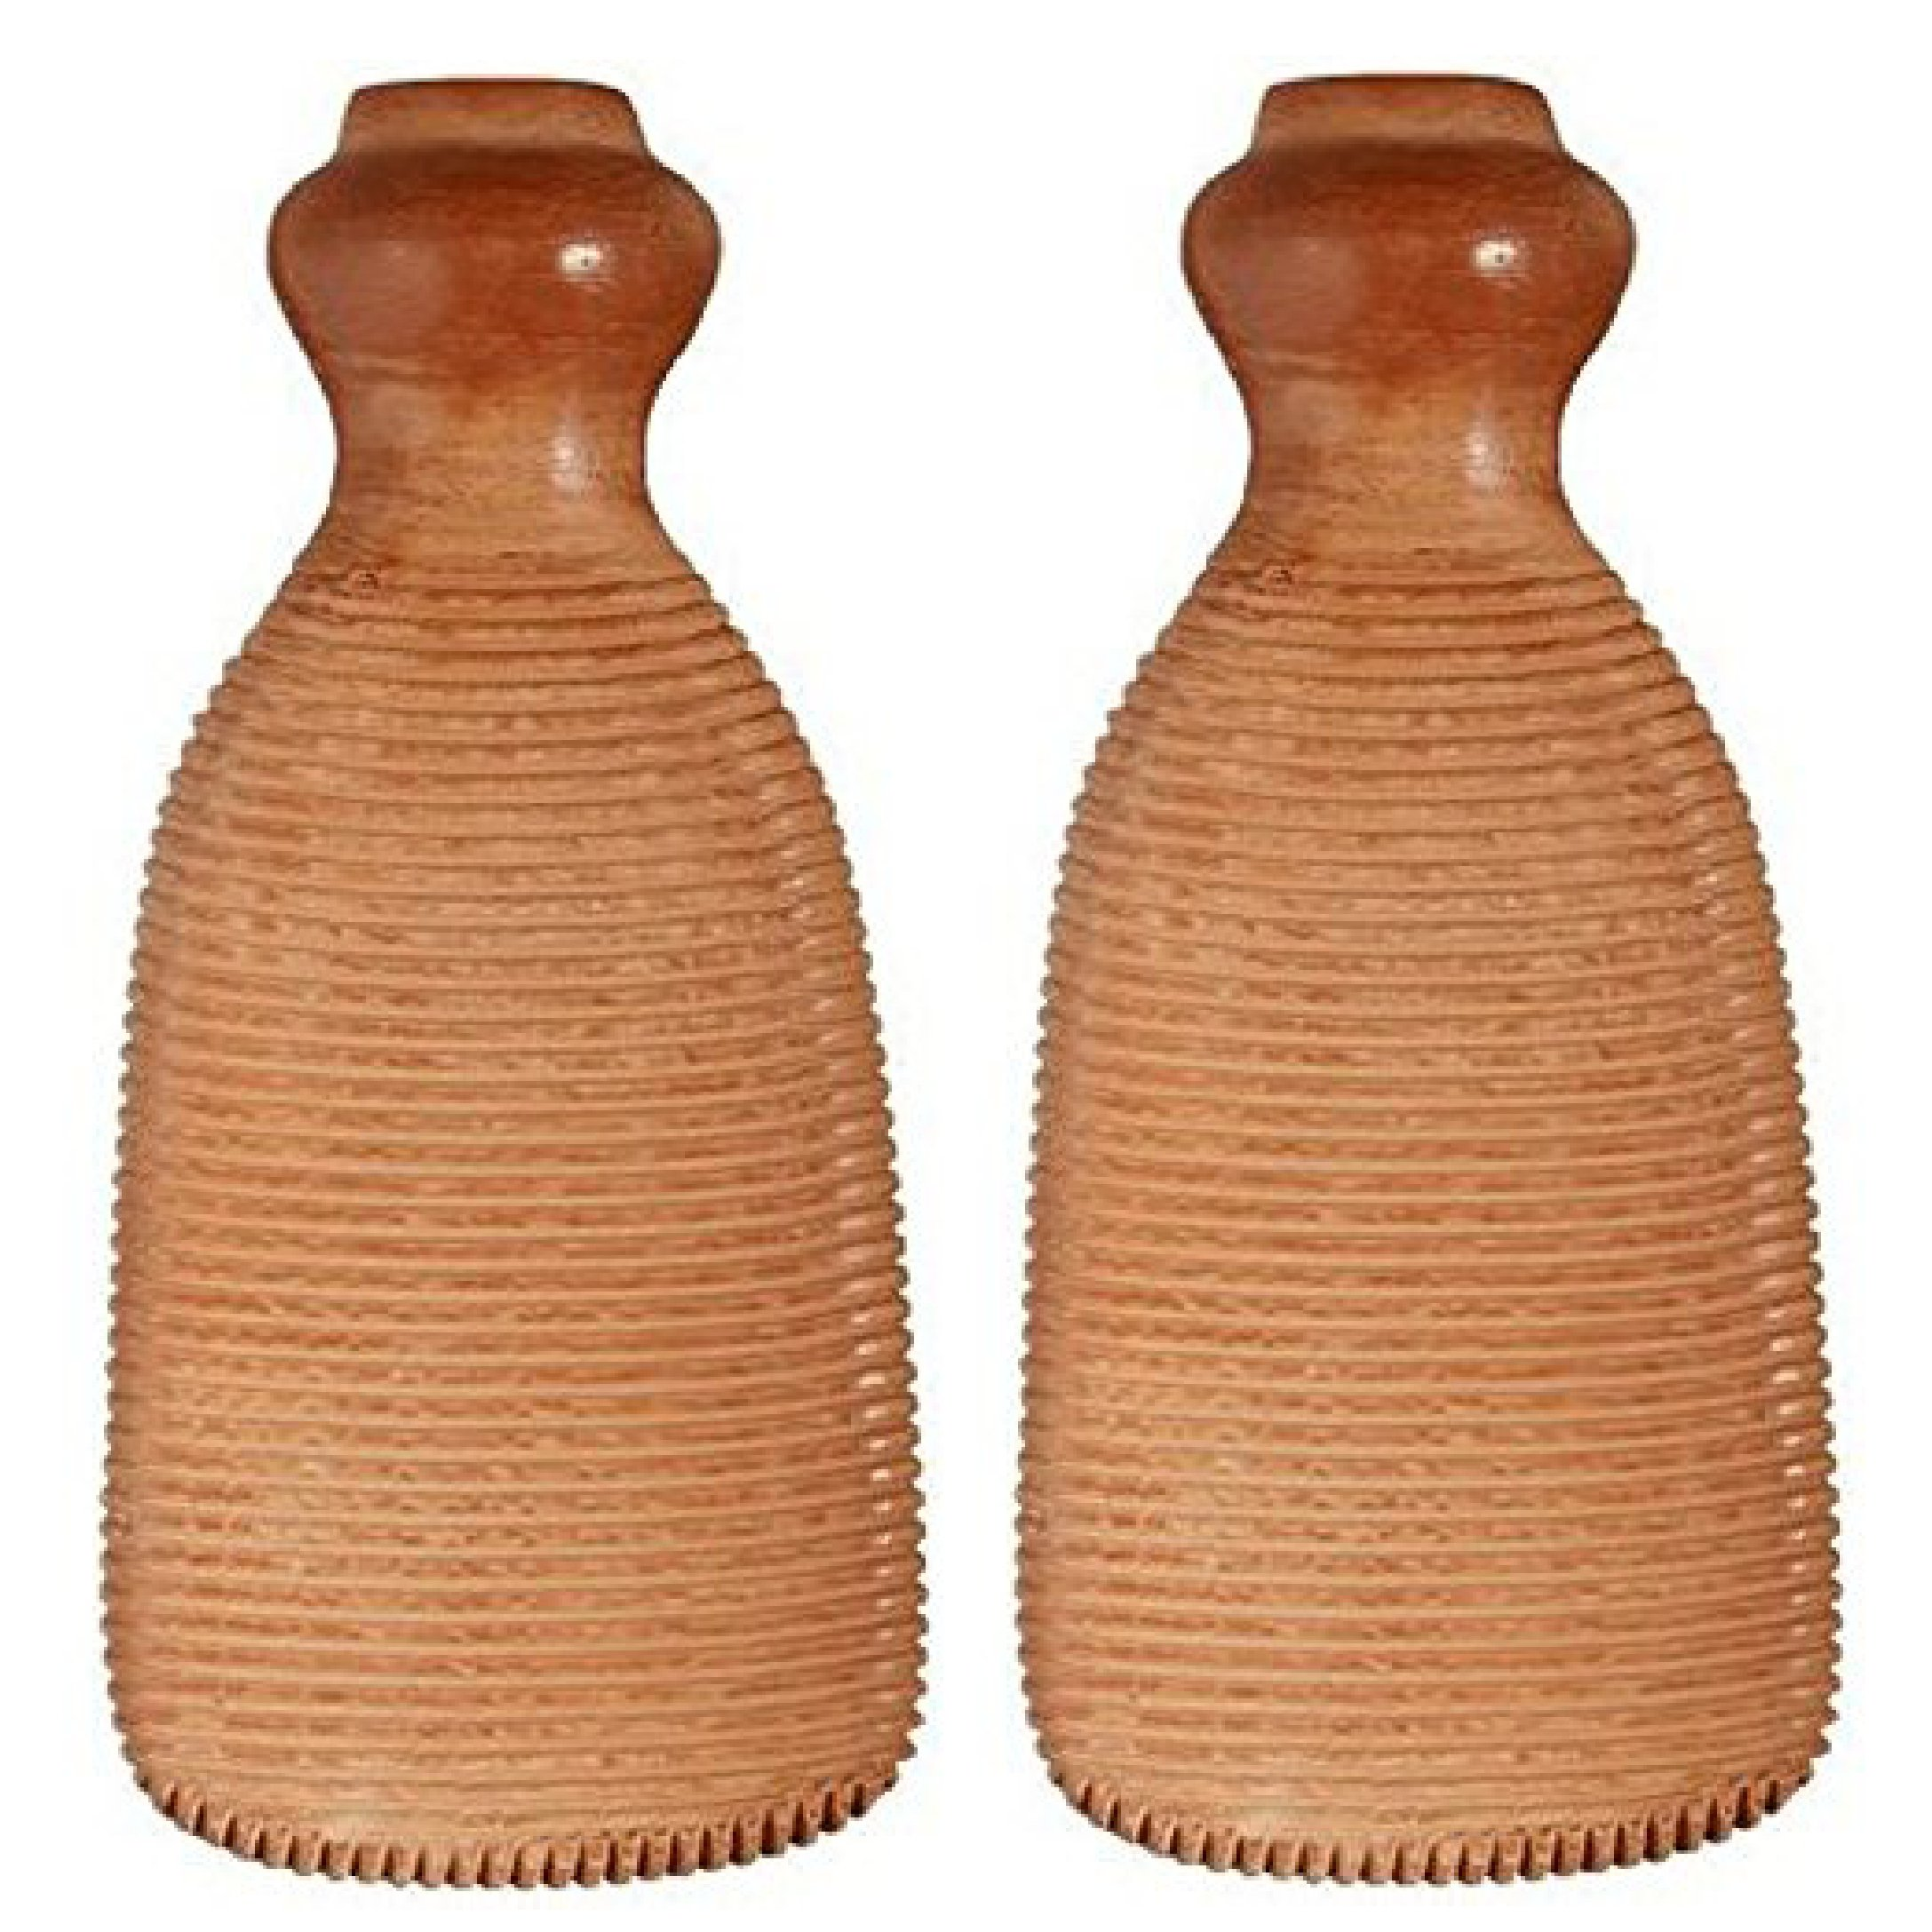 Gilden Tree 2-Sided Terra-Cotta Foot Scrubber (Set of 2) by Gilden Tree (Image #2)